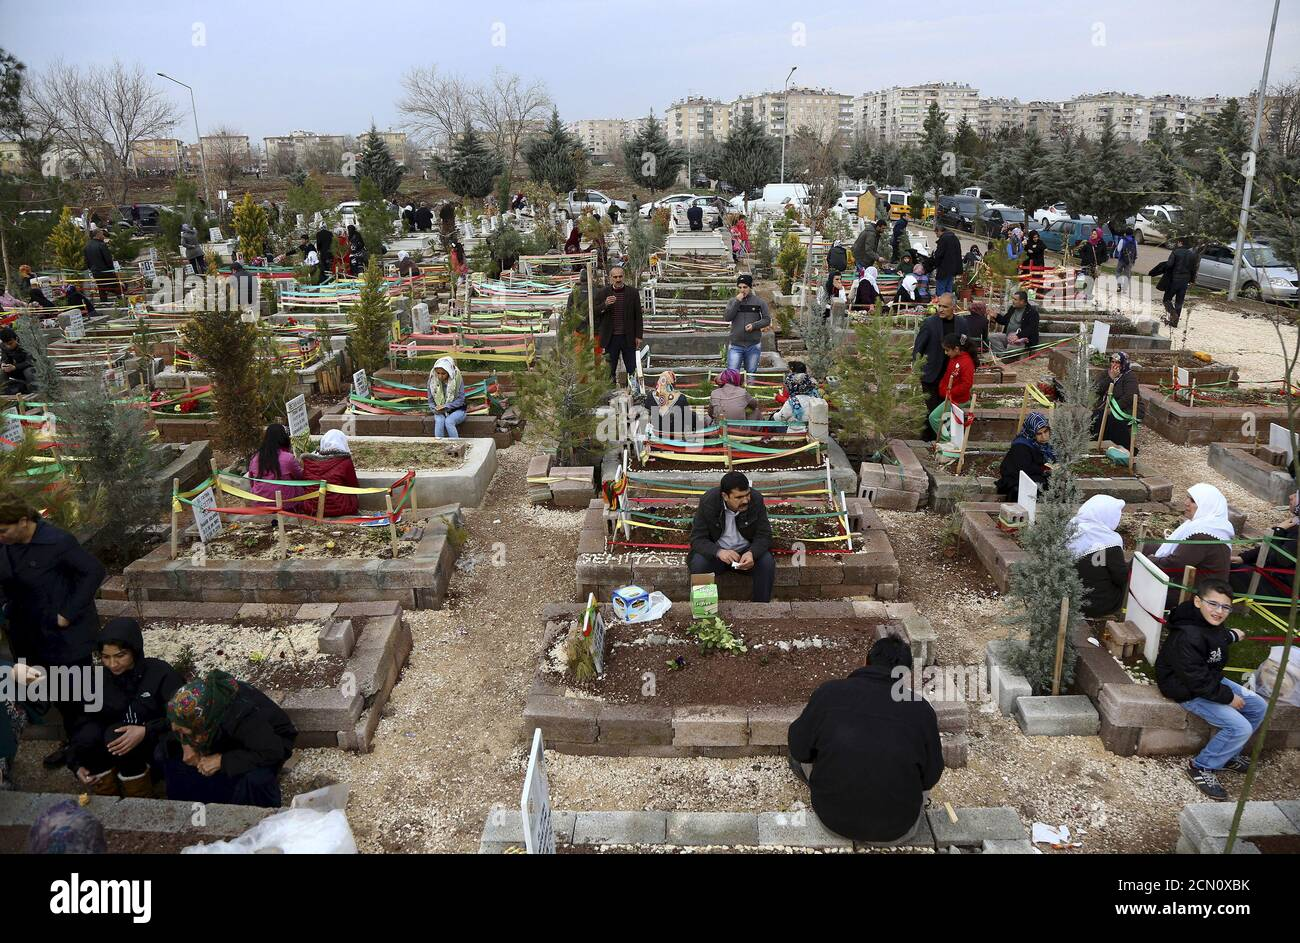 Family members visit the graves of their loved ones, most of them People's Protection Units (YPG) members who were killed during fightings against Islamic State in north Syria, at a cemetery in Diyarbakir, Turkey February 25, 2016. REUTERS/Sertac Kayar Stock Photo